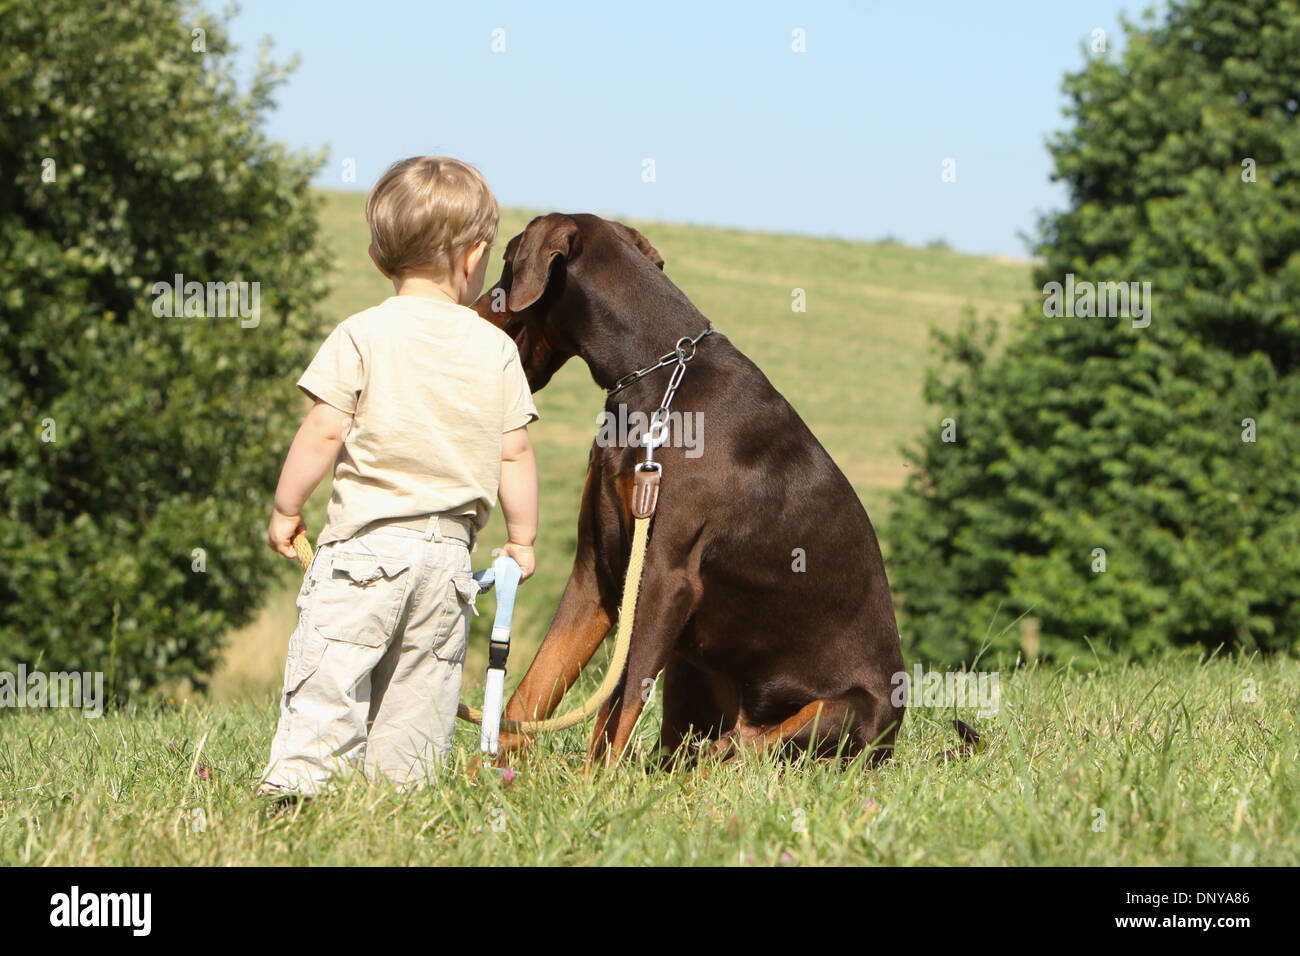 Dog Dobermann / Doberman Pinscher adult brown and tan with a baby - Stock Image